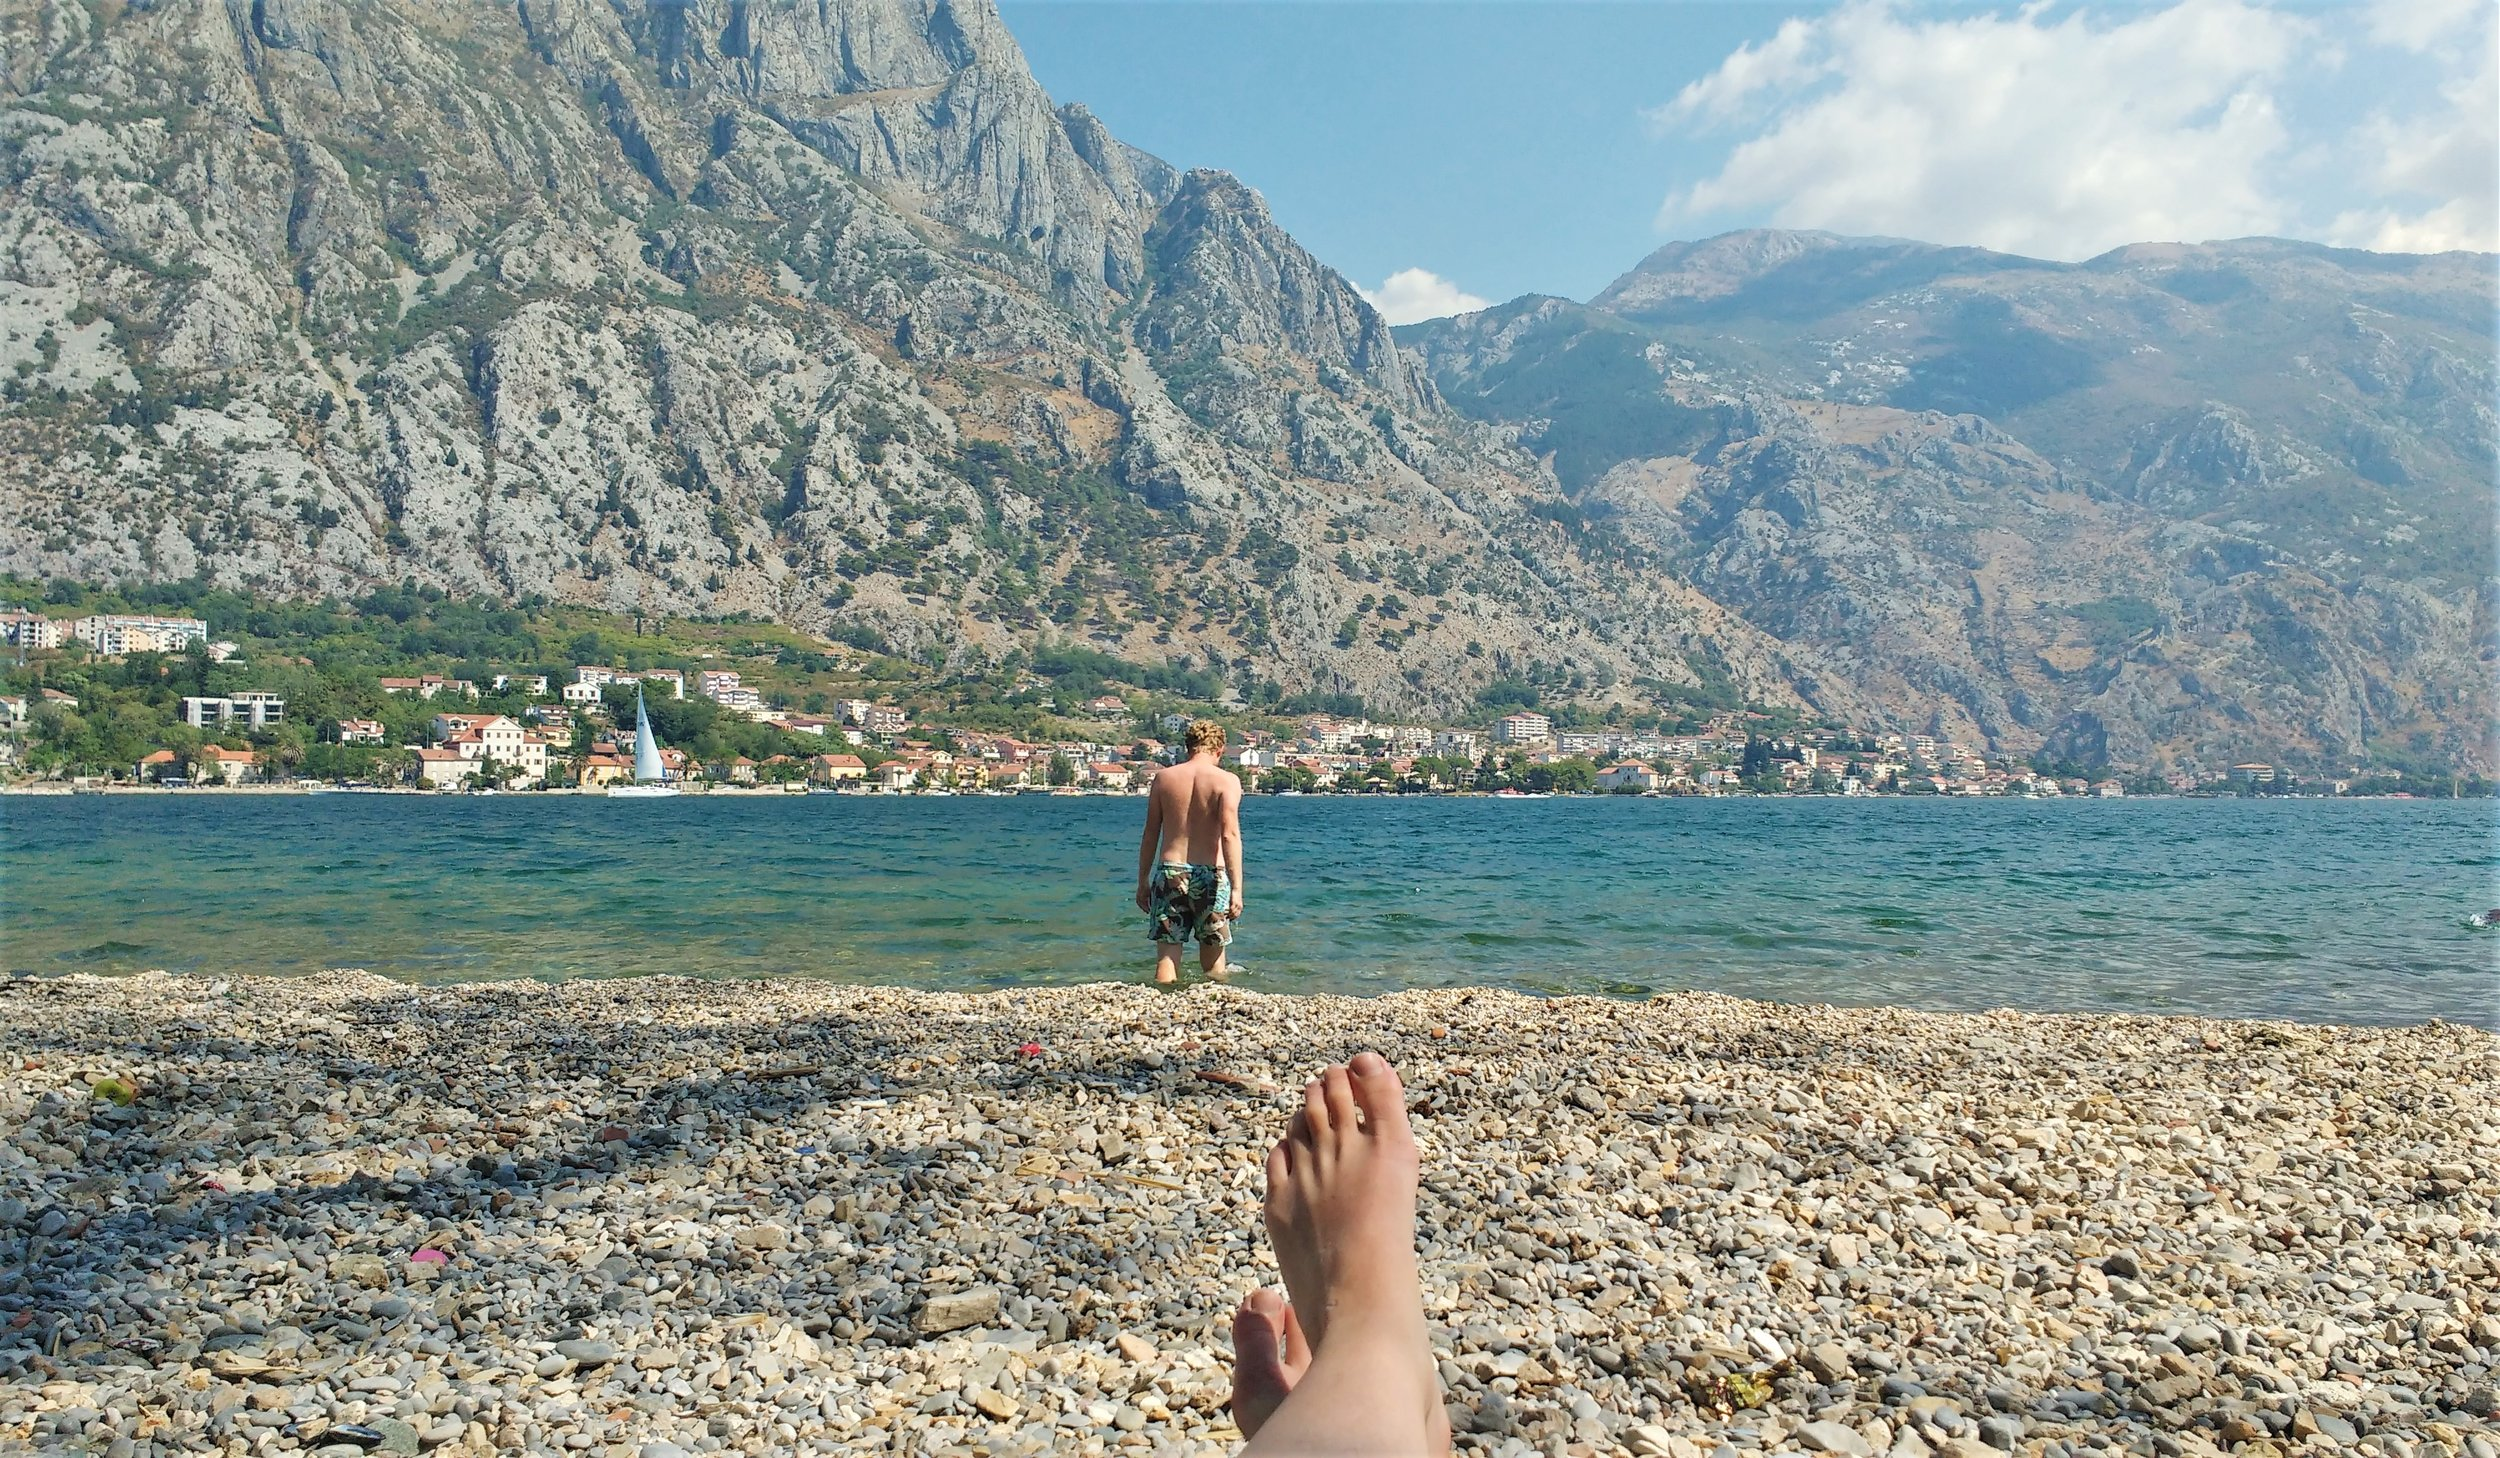 beaches in the bay of kotor